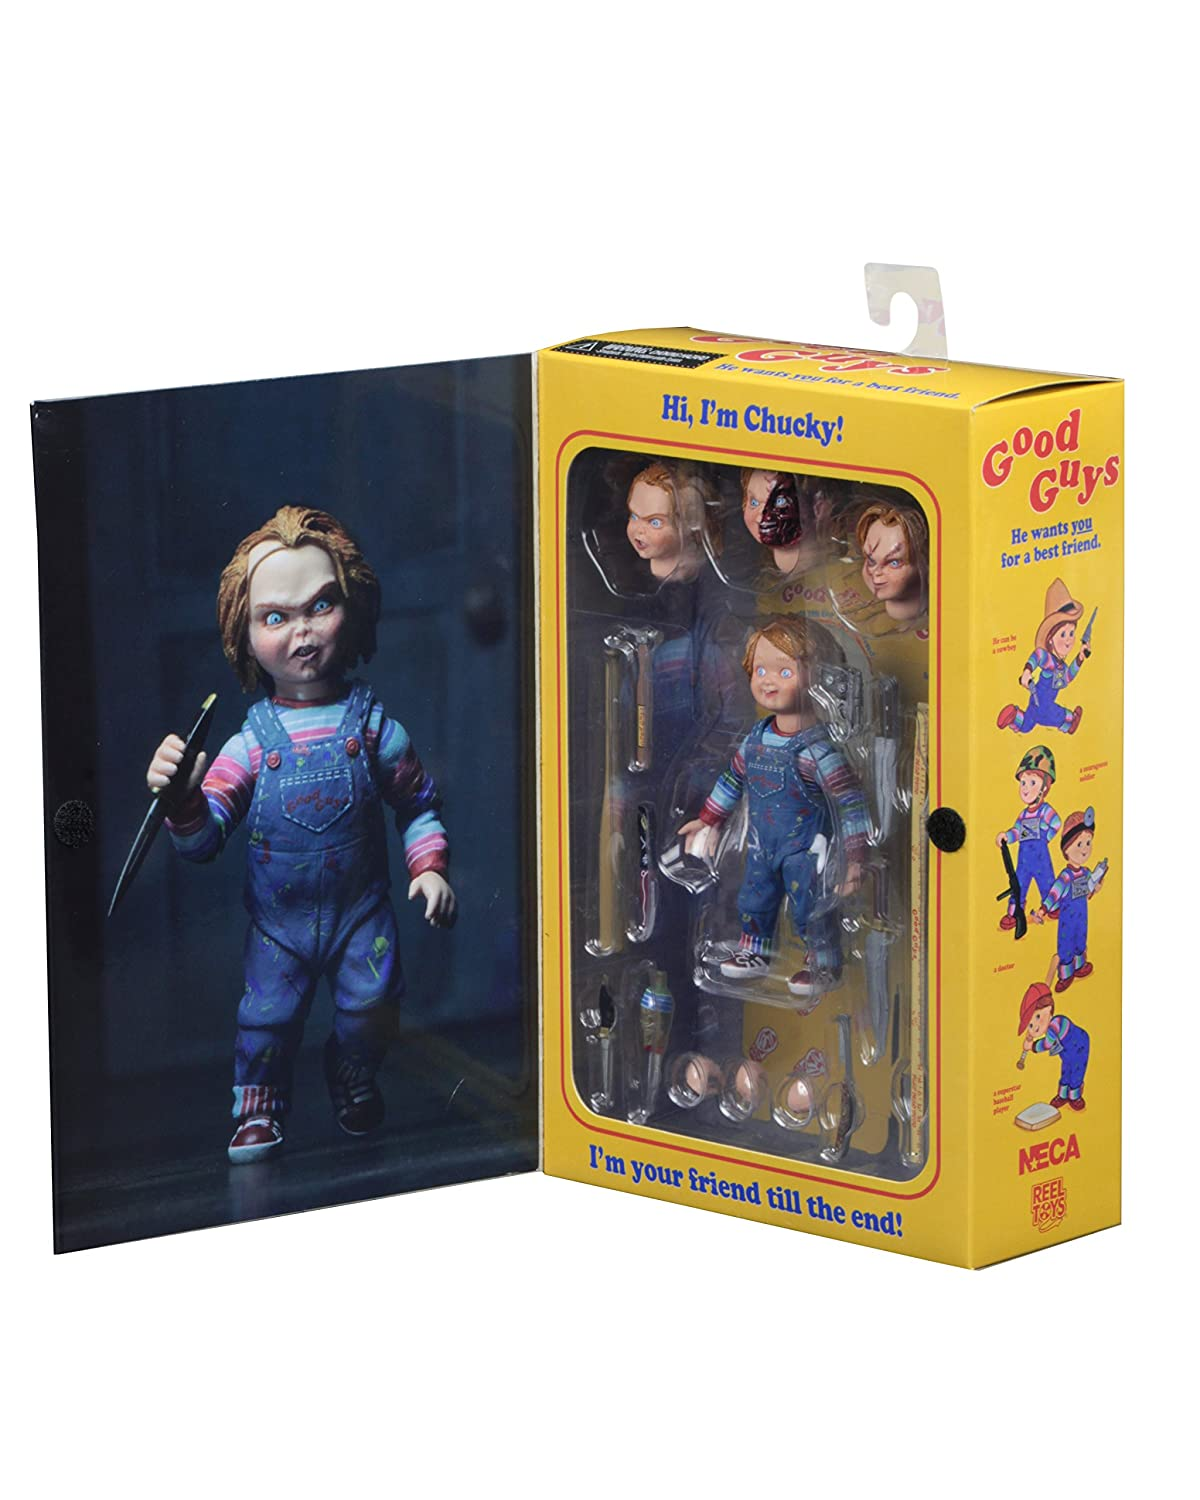 NECA Chucky 4 inch Scale Action Figure Ultimate Chucky